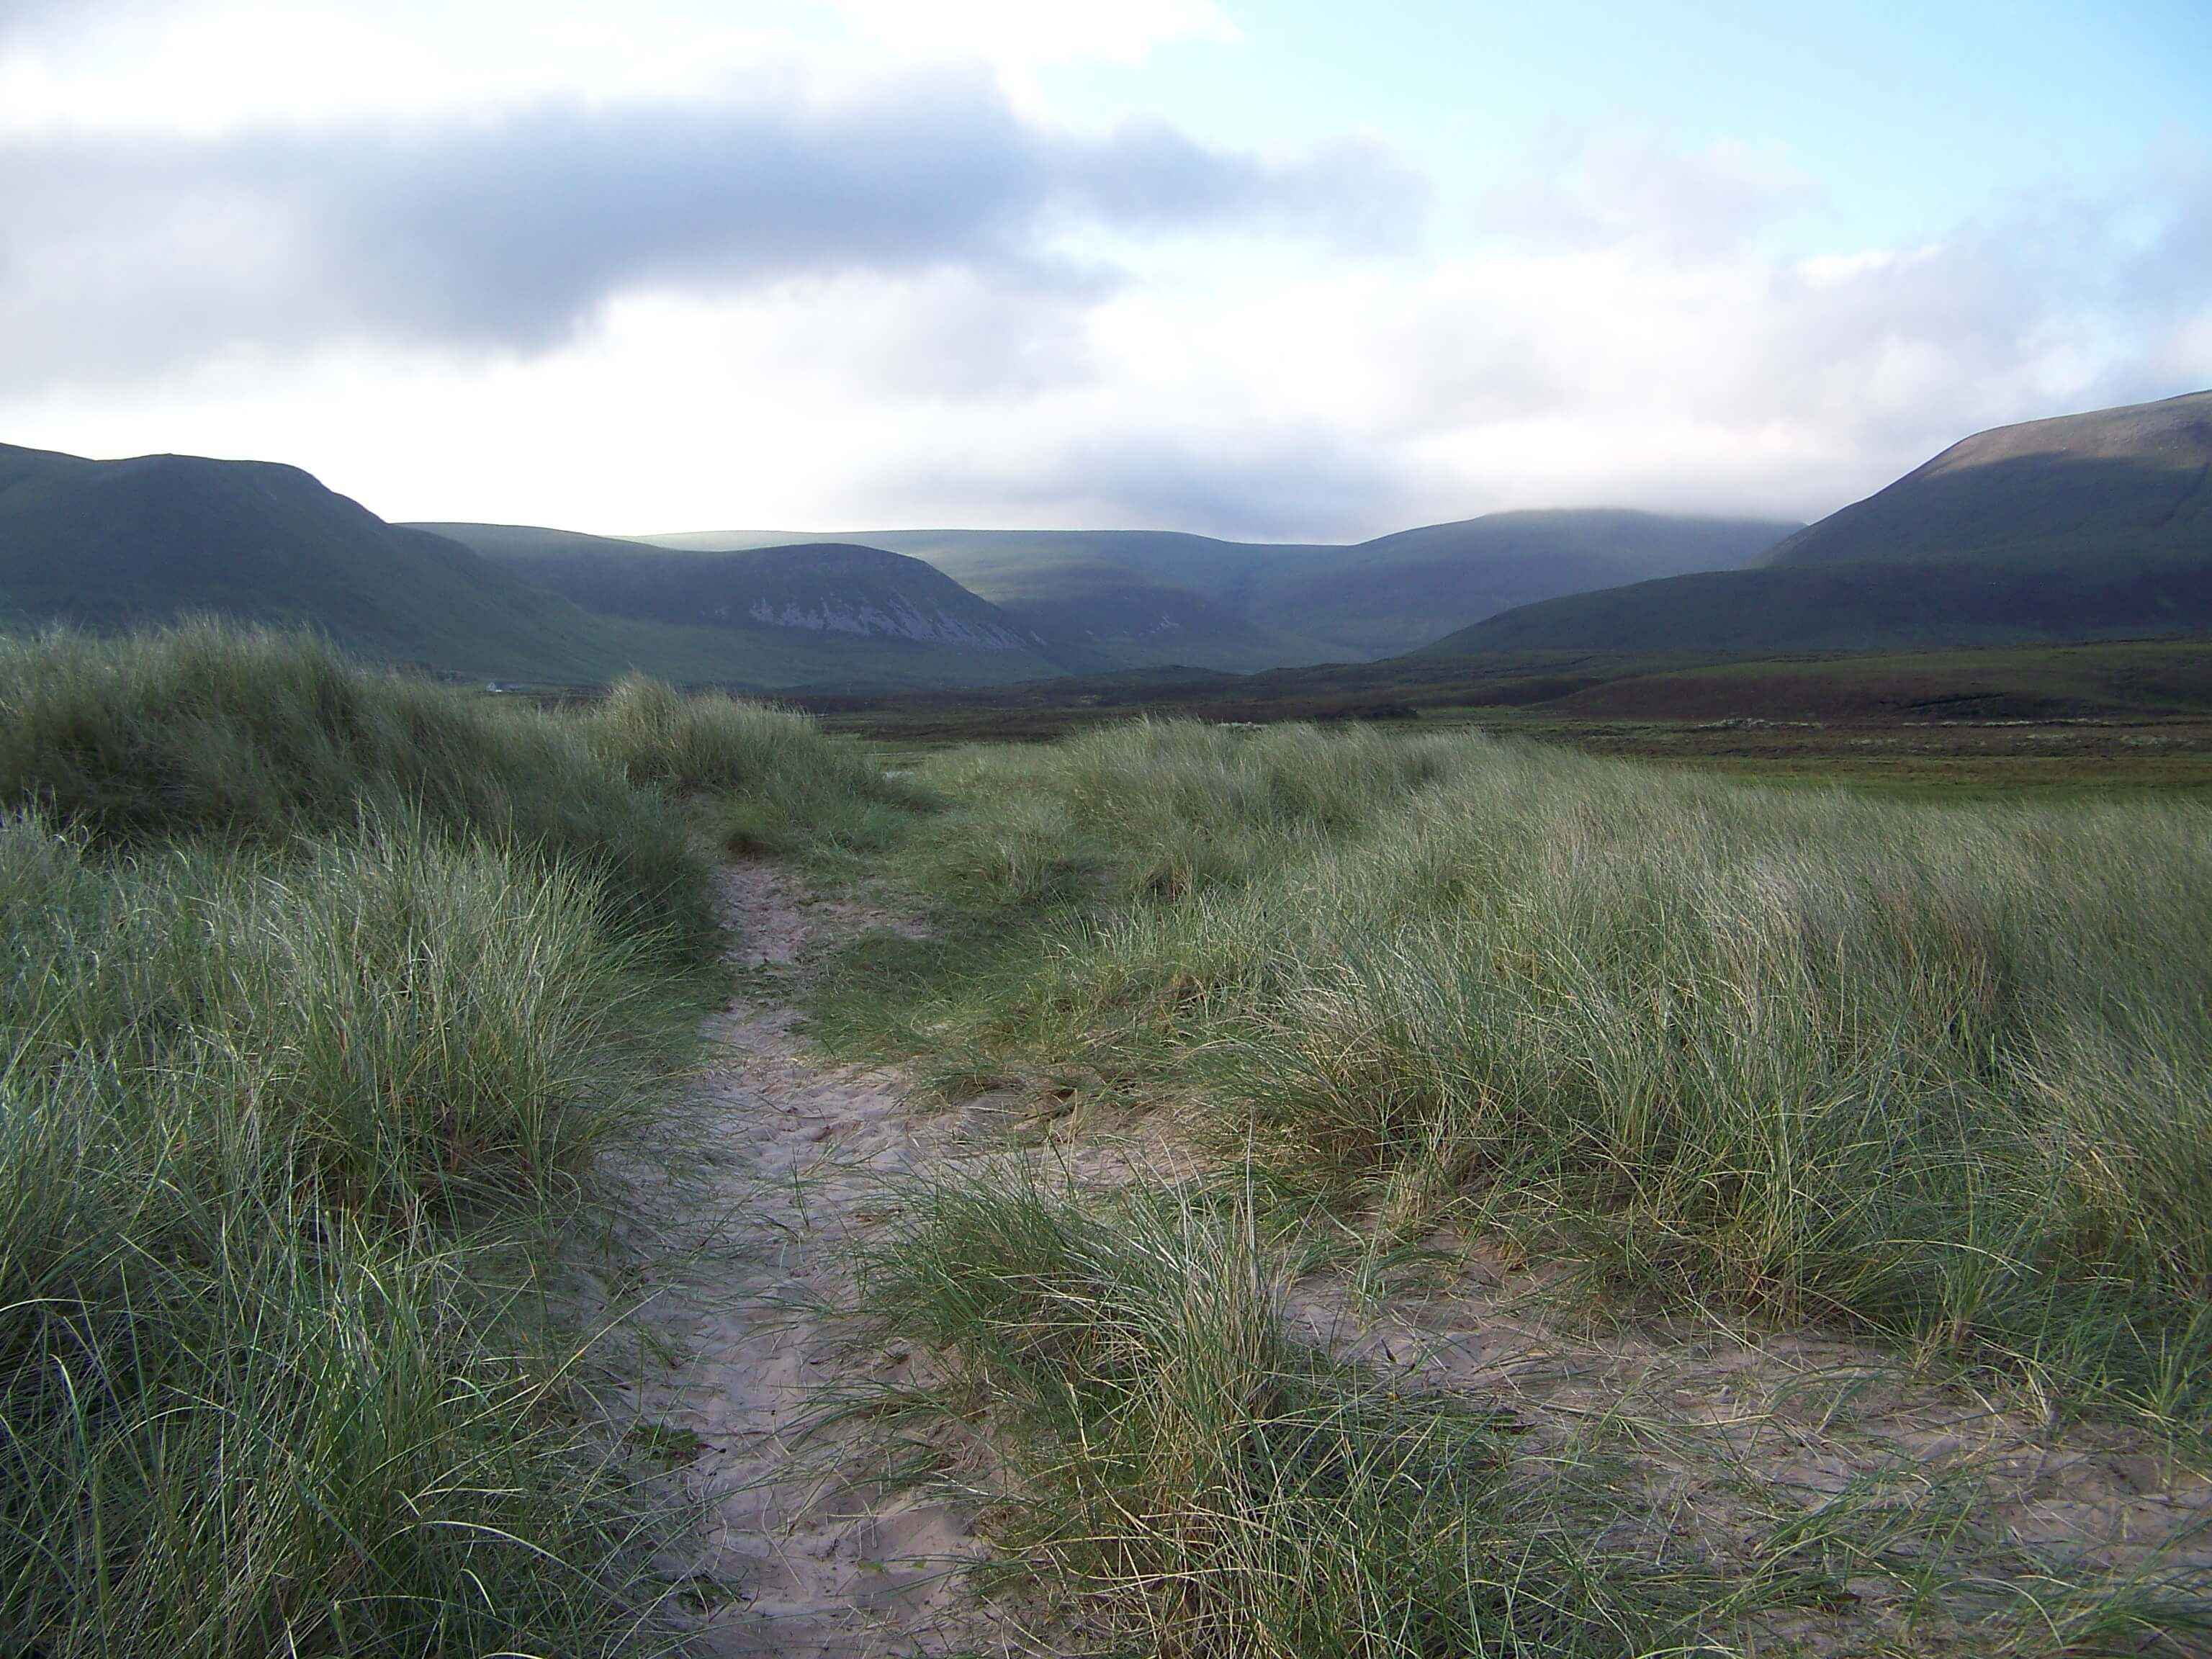 Pink sand trails through the marram grass, Hoy, Orkney